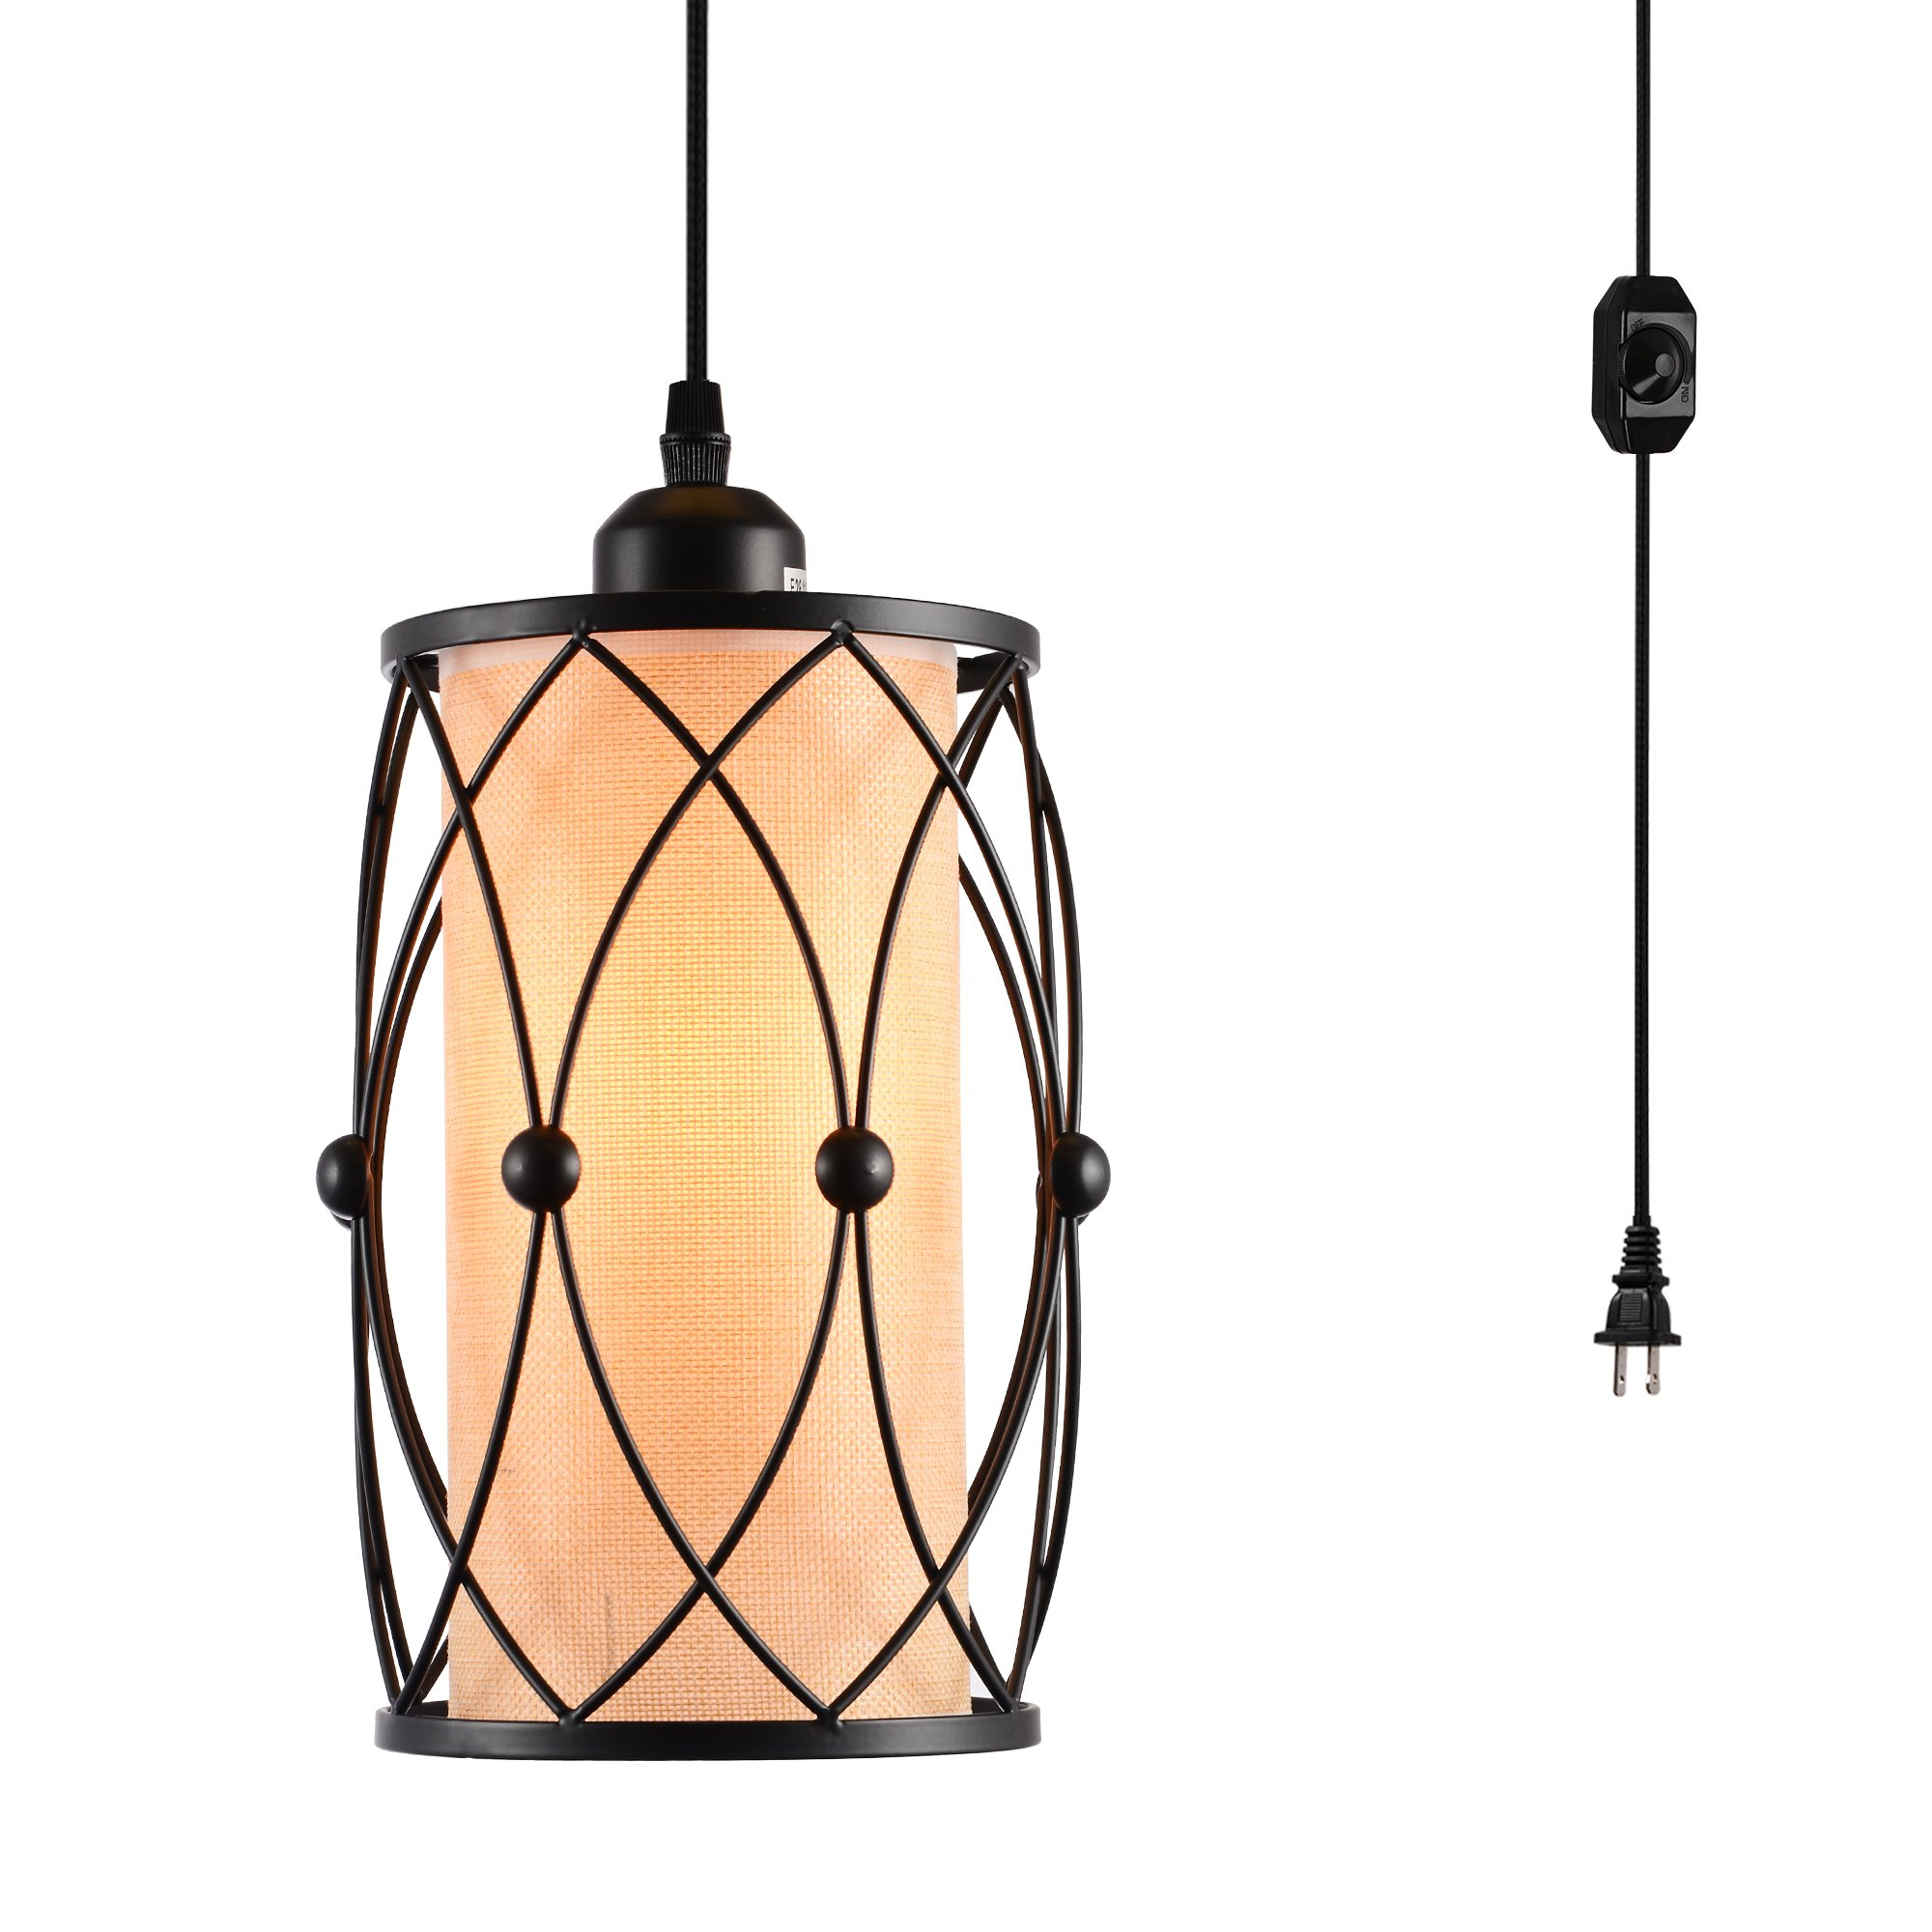 HMVPL Swag Plug-In Pendant Light with 16.4 Ft Hanging Cord and On/Off Dimmer Switch,Original Industrial Cage and Linen Lampshade Design for Dining Room, Bed Room,Hallway and more by HMVPL